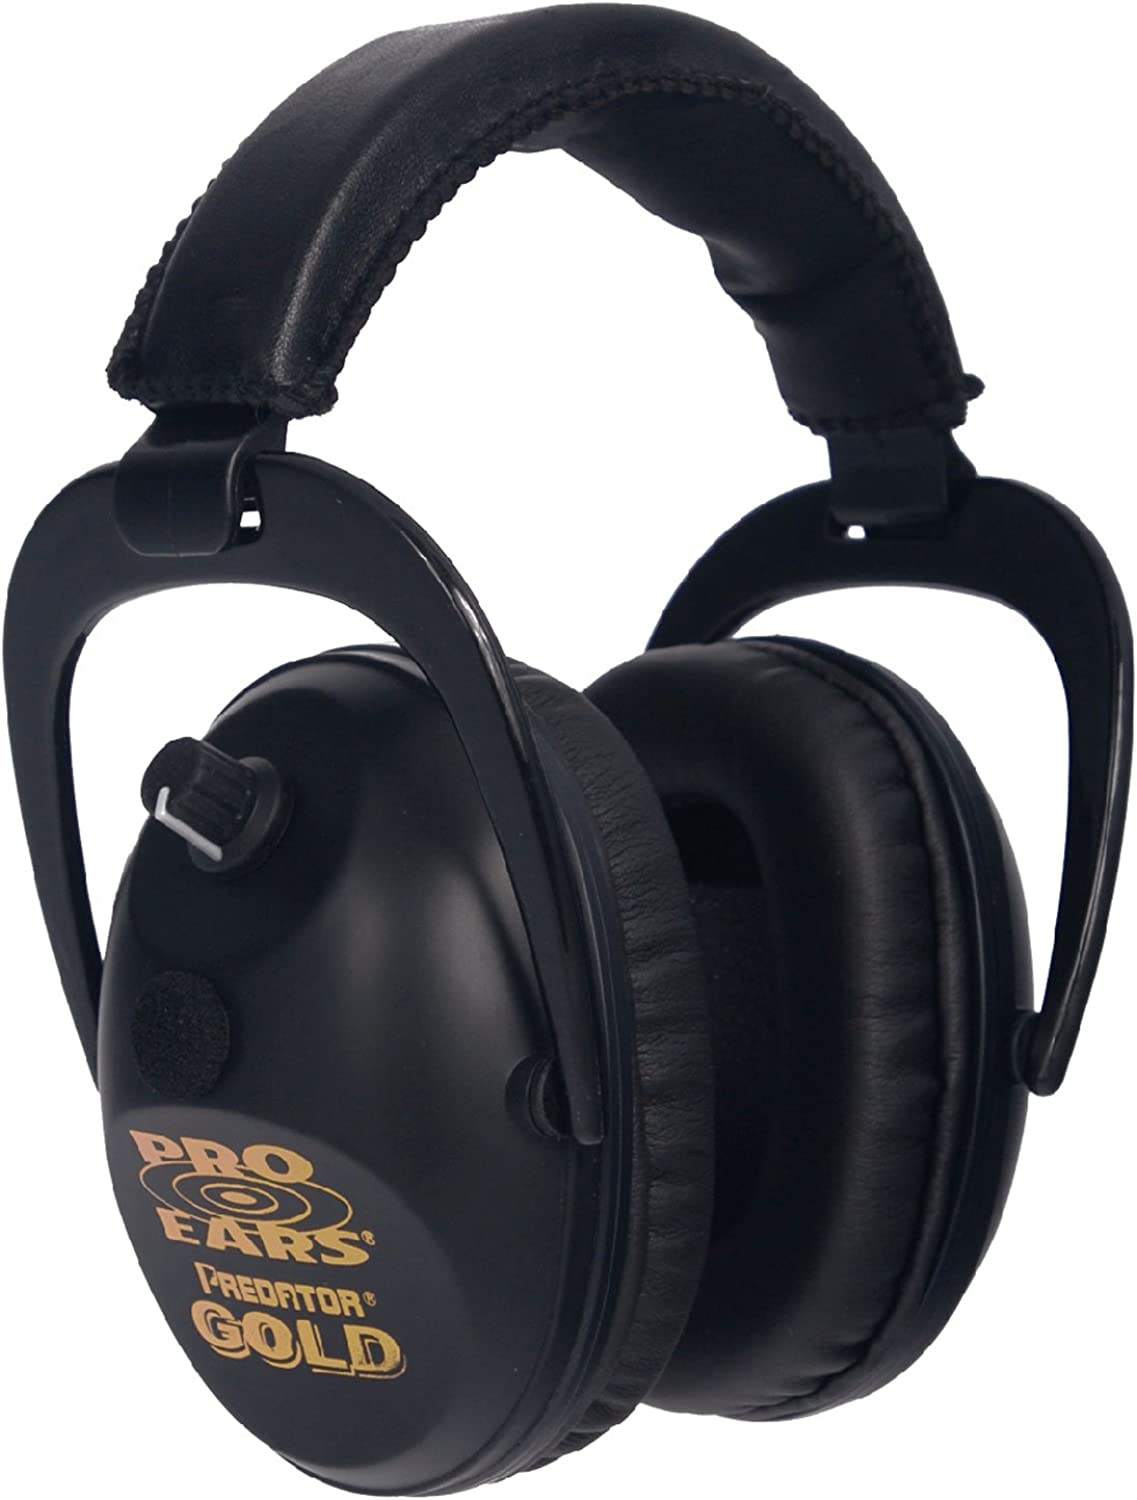 Excellence Pro Ears Manufacturer direct delivery - Predator Gold and Protection Amplfication Hearing